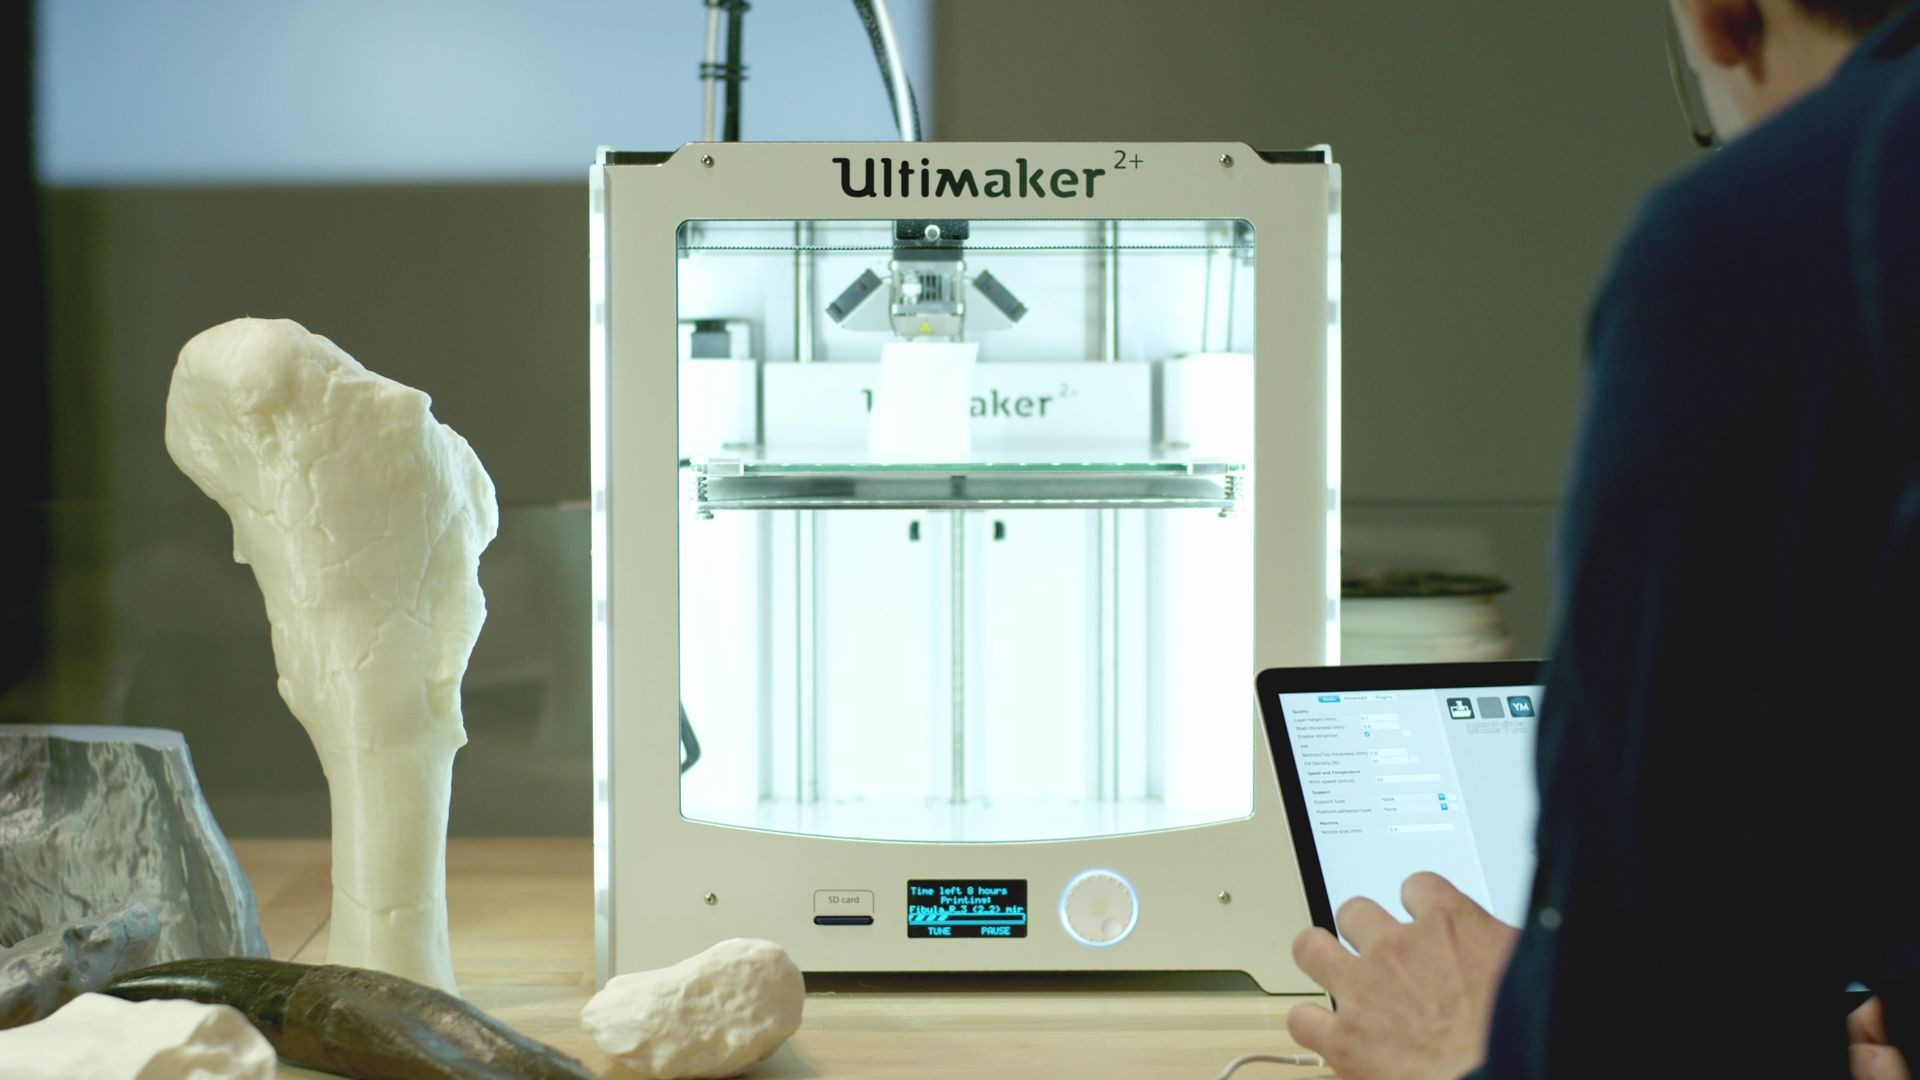 Naturalis biodiversity center museum completes T. rex skeleton with Ultimaker 3D printer